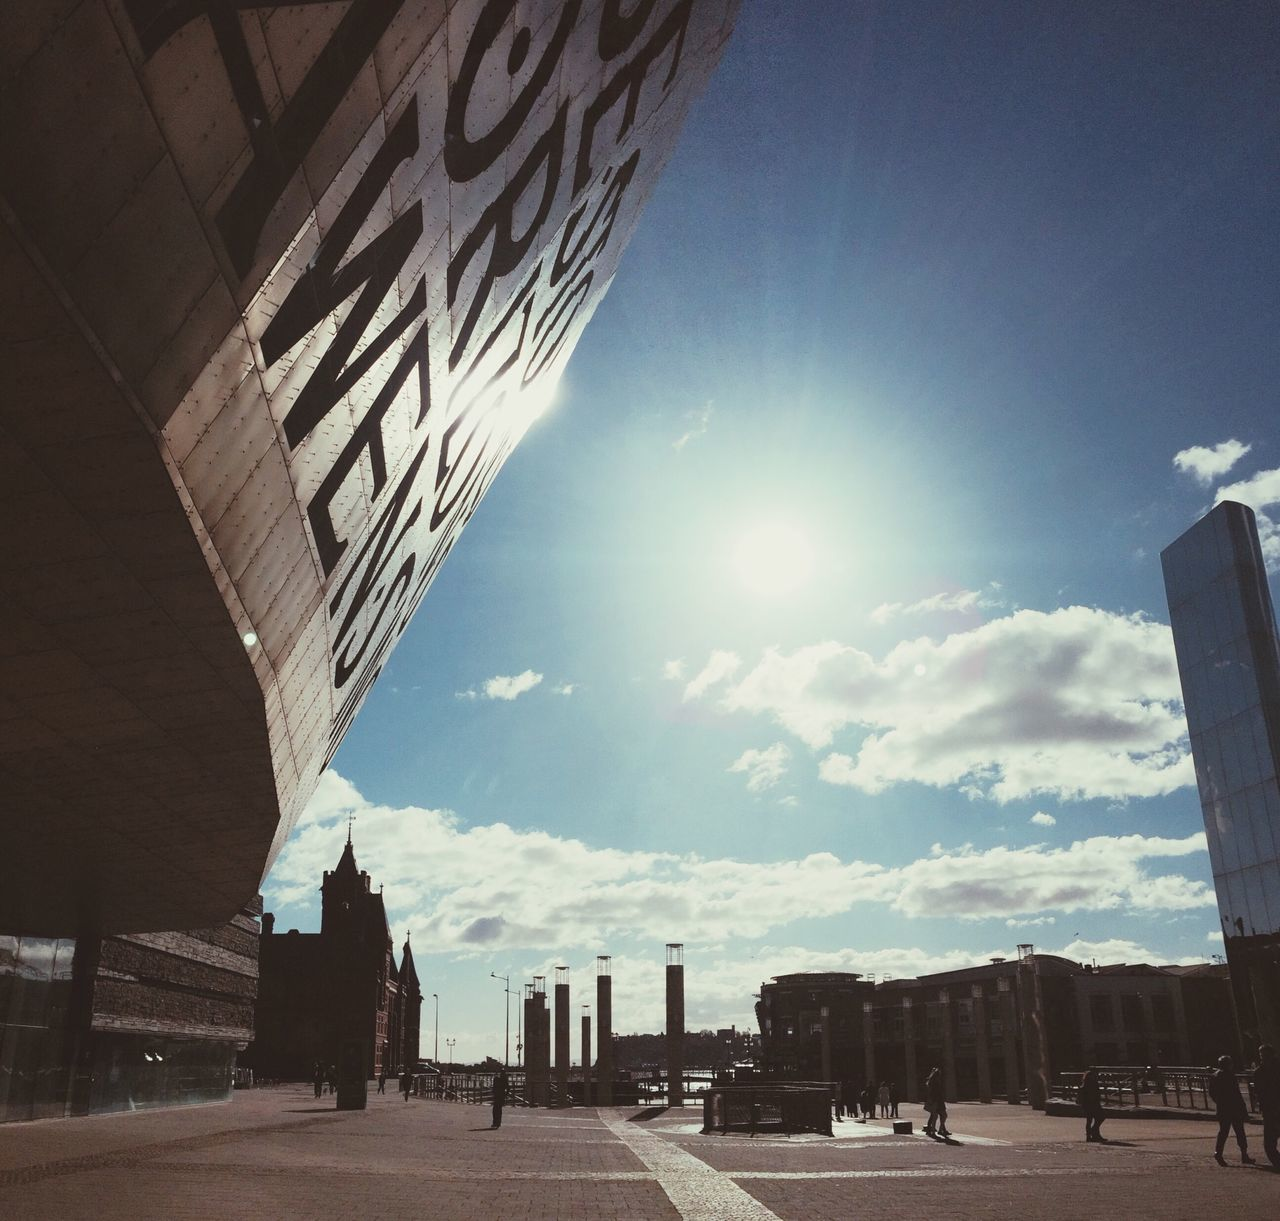 built structure, architecture, sky, sunlight, building exterior, outdoors, day, city, no people, nature